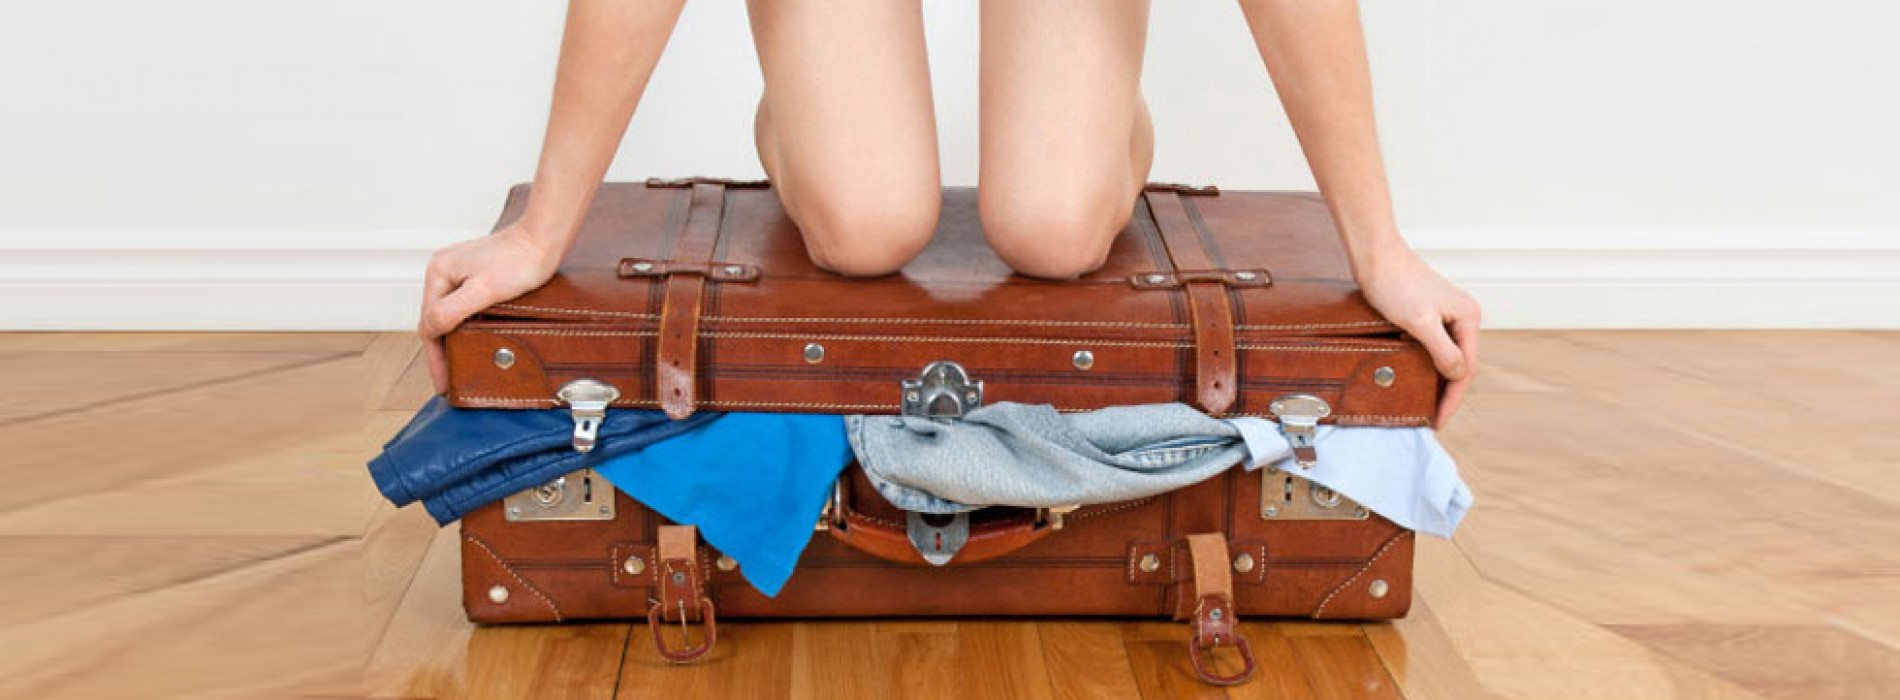 Backpacks or Suitcase, which is better for a traveller?